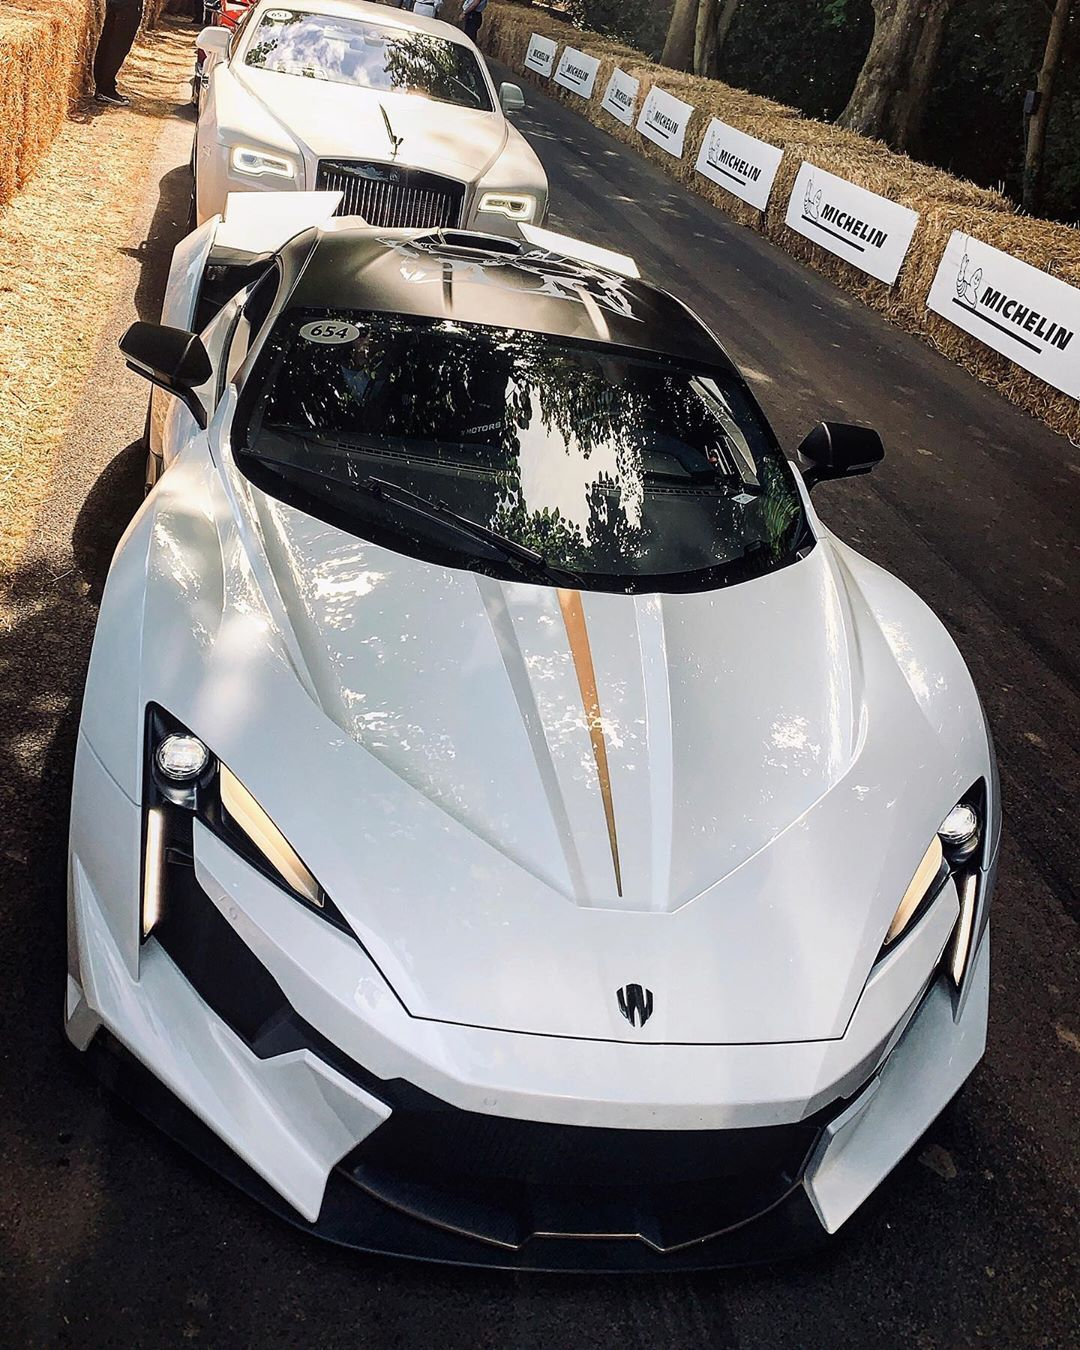 Pin By Adis Aletic On Blee Super Cars Sports Cars Gt Cars